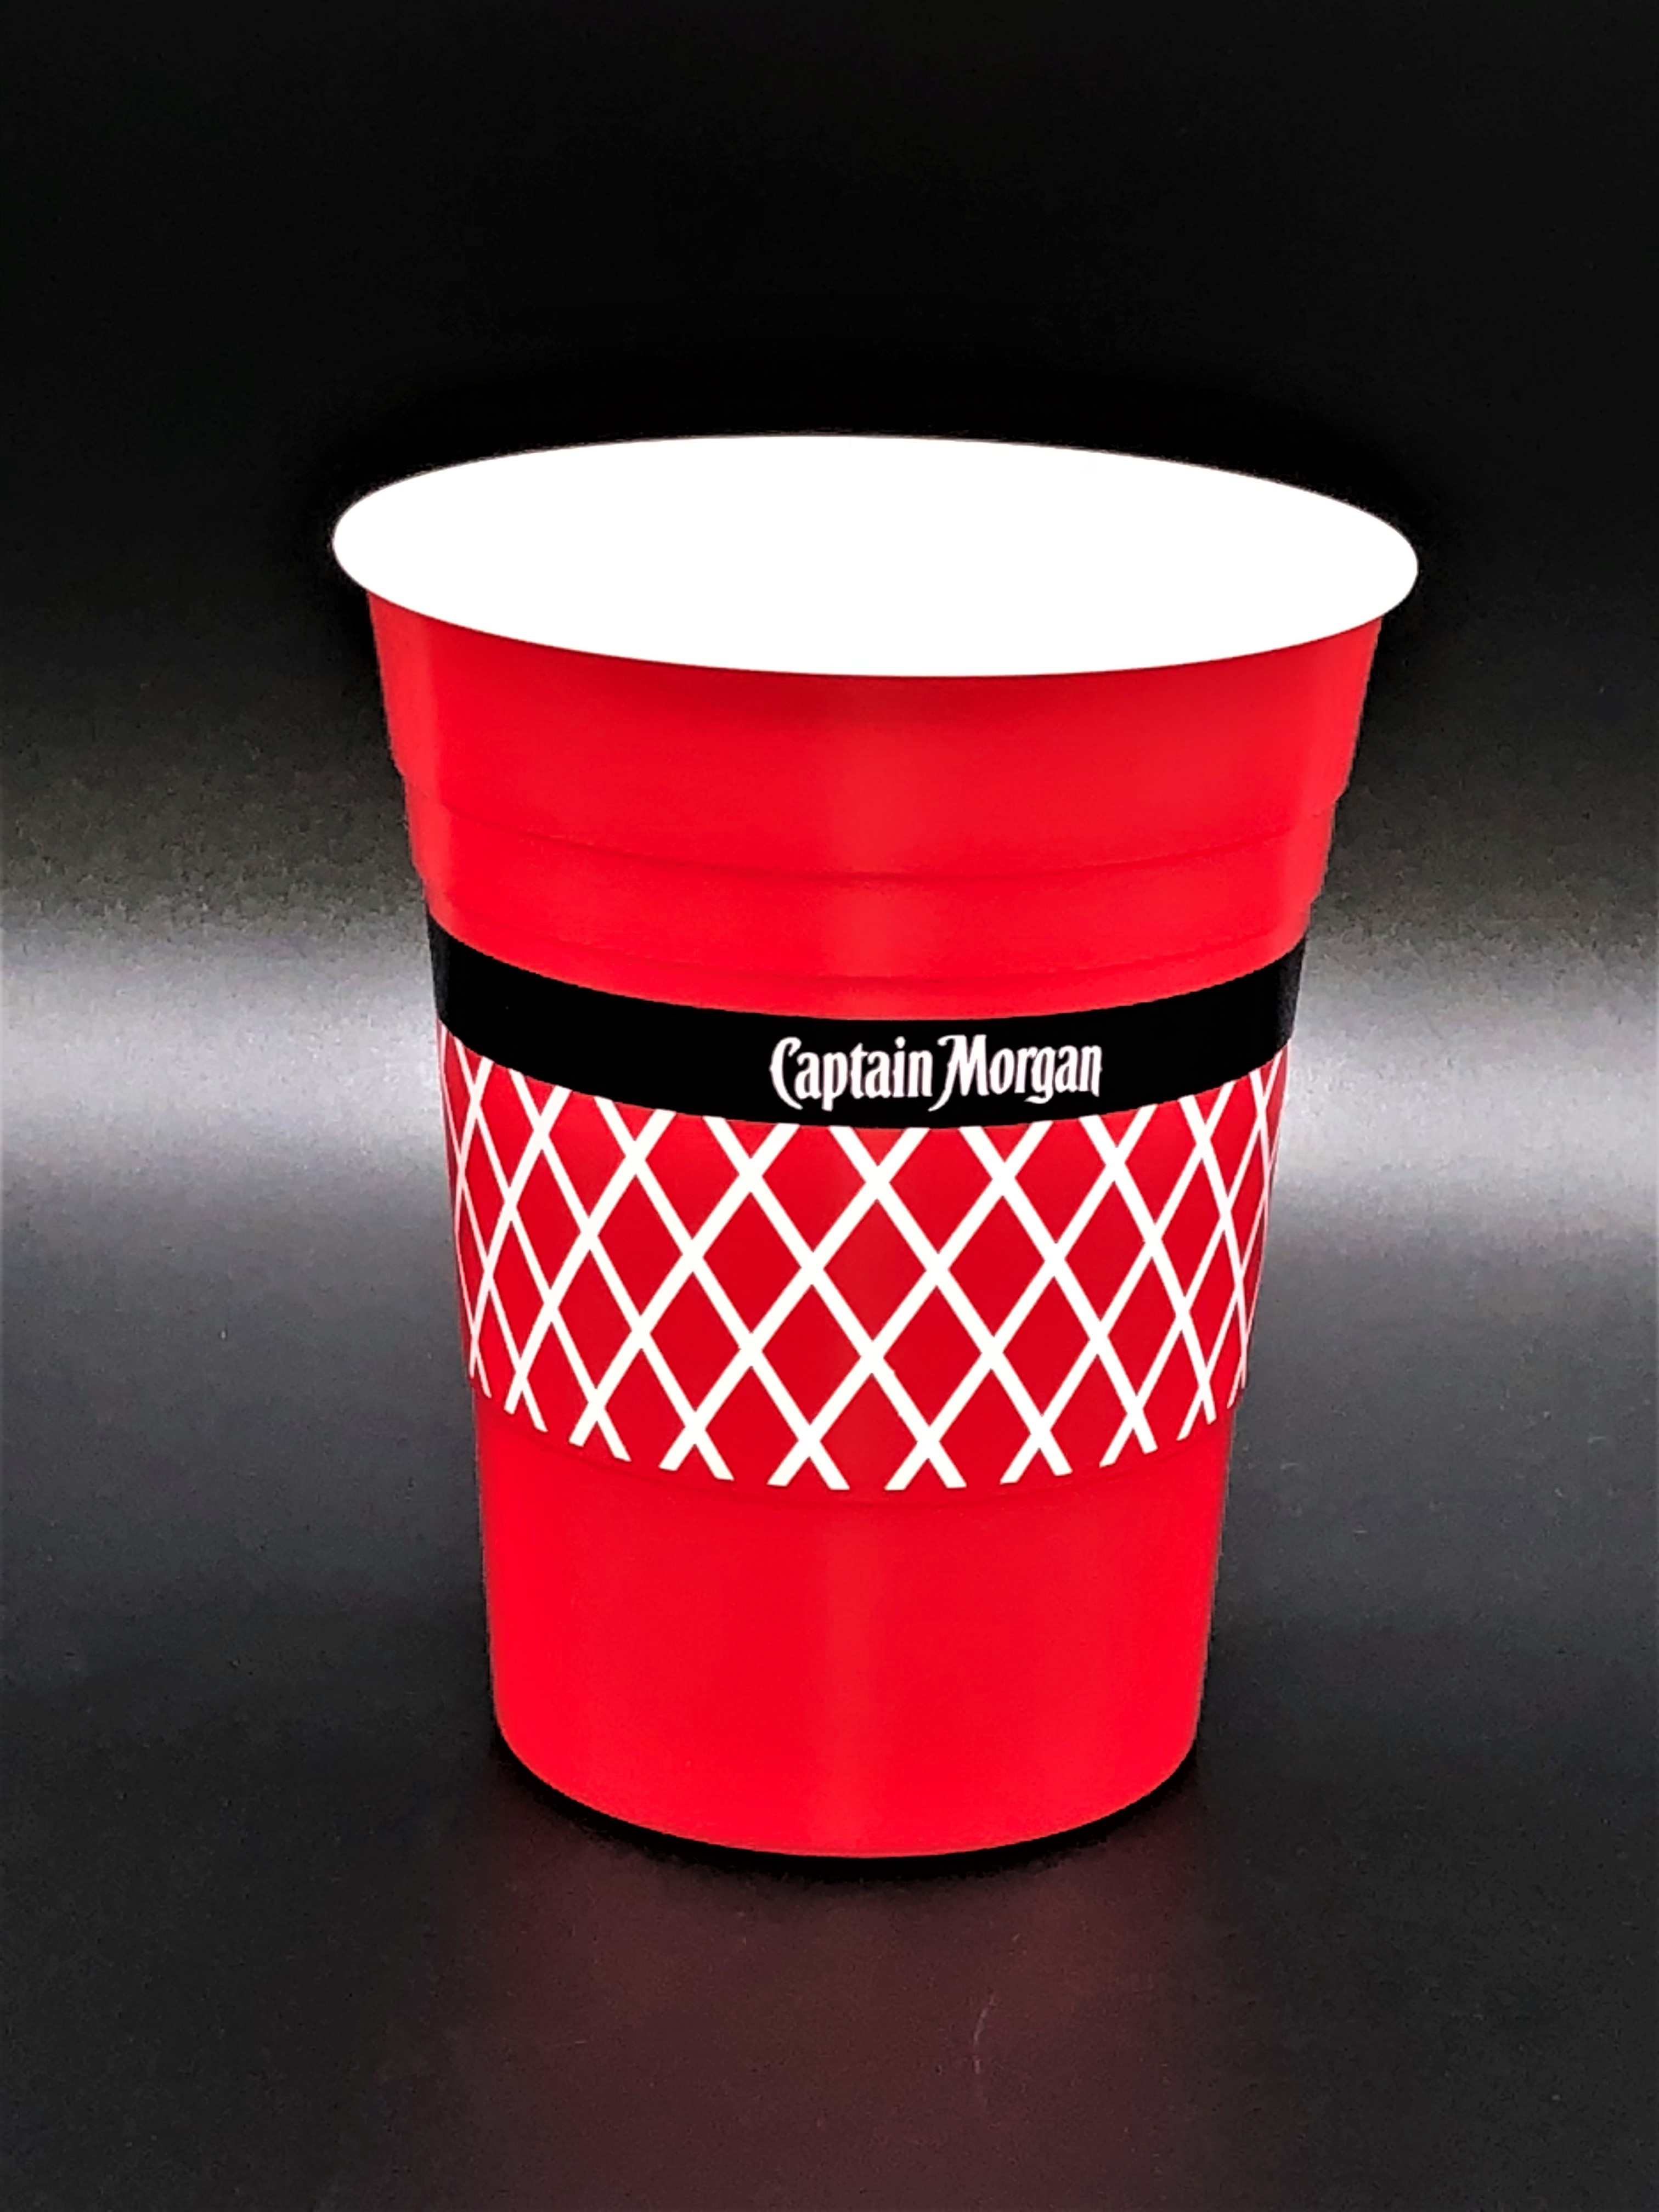 Stadium Cup (Captain Morgan)